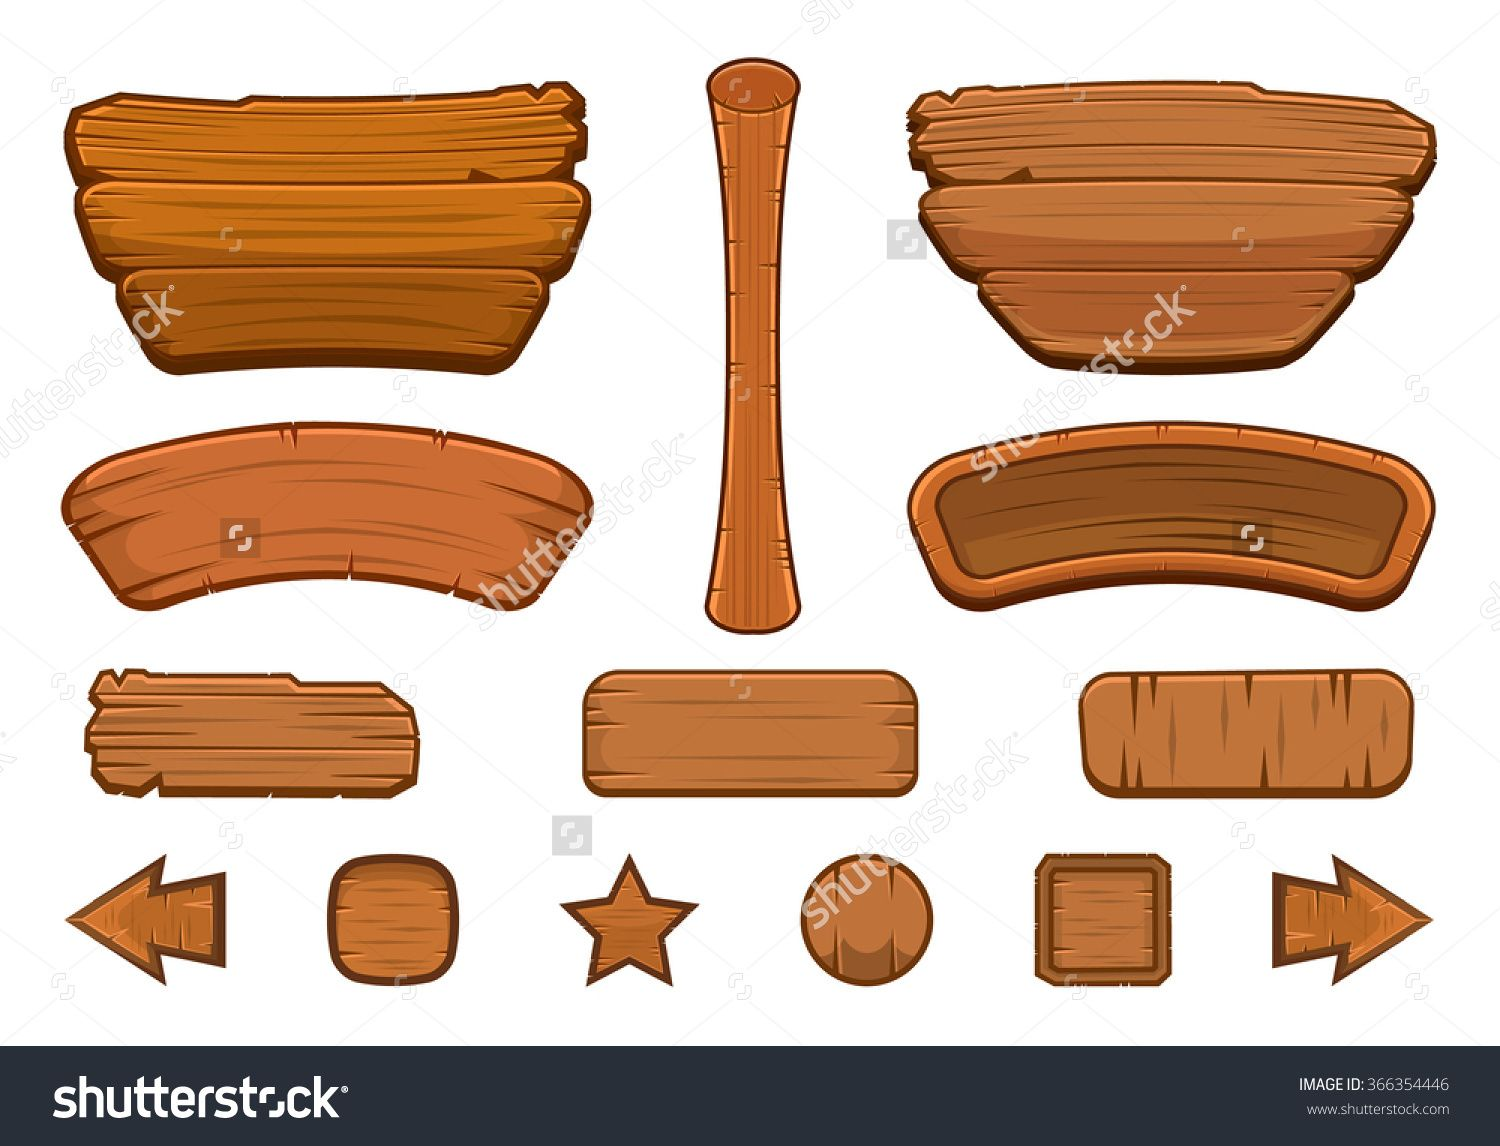 Set Of Cartoon Wooden Buttons With Different Shapes For Game User Interface Gui Gui Development Vector Illustration Wood Illustration Game Logo Game Design